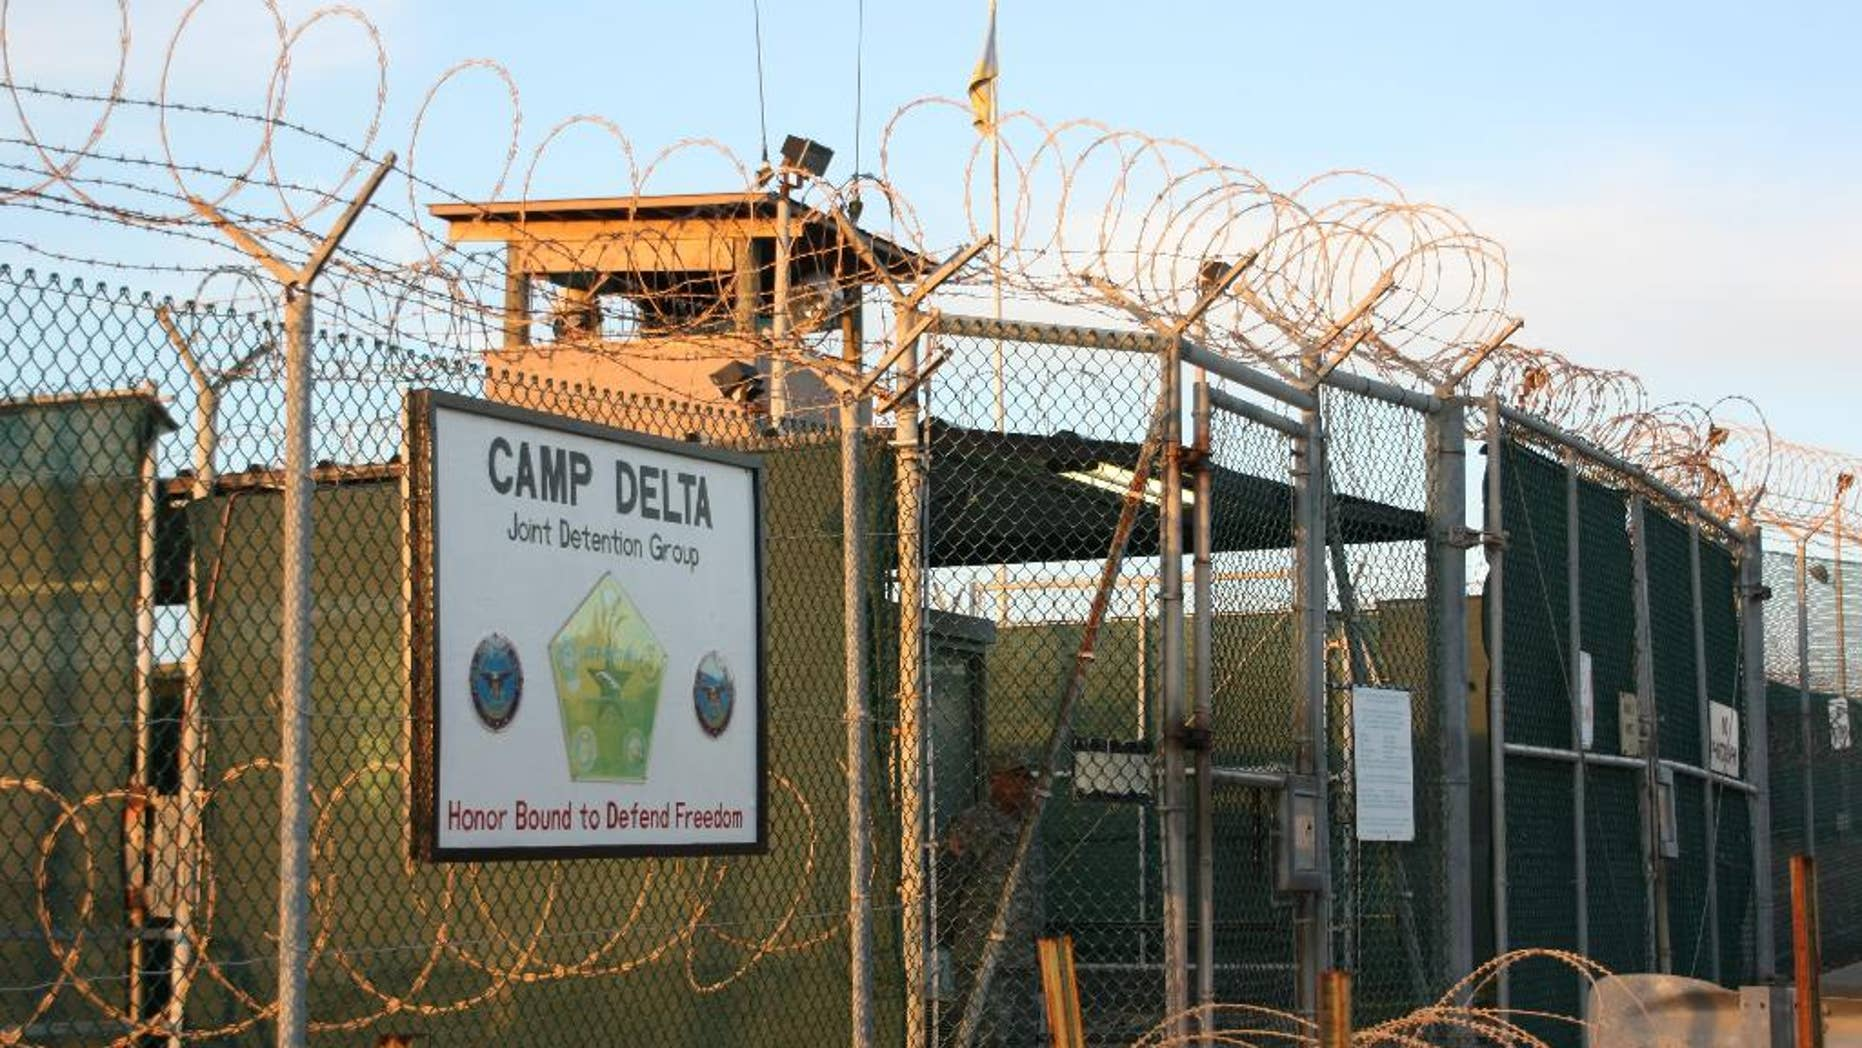 FILE - This Oct. 24, 2010, file photo shows the entrance to Camp Delta at Guantanamo Bay. Six men long held at Guantanamo Bay arrived Saturday, June 13, 2015,  in Oman, the first movement of detainees out of the U.S. prison for terrorism suspects in five months as Congress considers new restrictions on transfers. The six detainees — all from Oman's war-torn Mideast neighbor Yemen — boarded a flight from the U.S. prison in Cuba on Friday, bringing Guantanamo's population down to 116. The move means President Barack Obama has now transferred more than half of the 242 detainees who were at Guantanamo when he was sworn into office after campaigning to close it. (AP Photo/The Canadian Press, Colin Perkel)